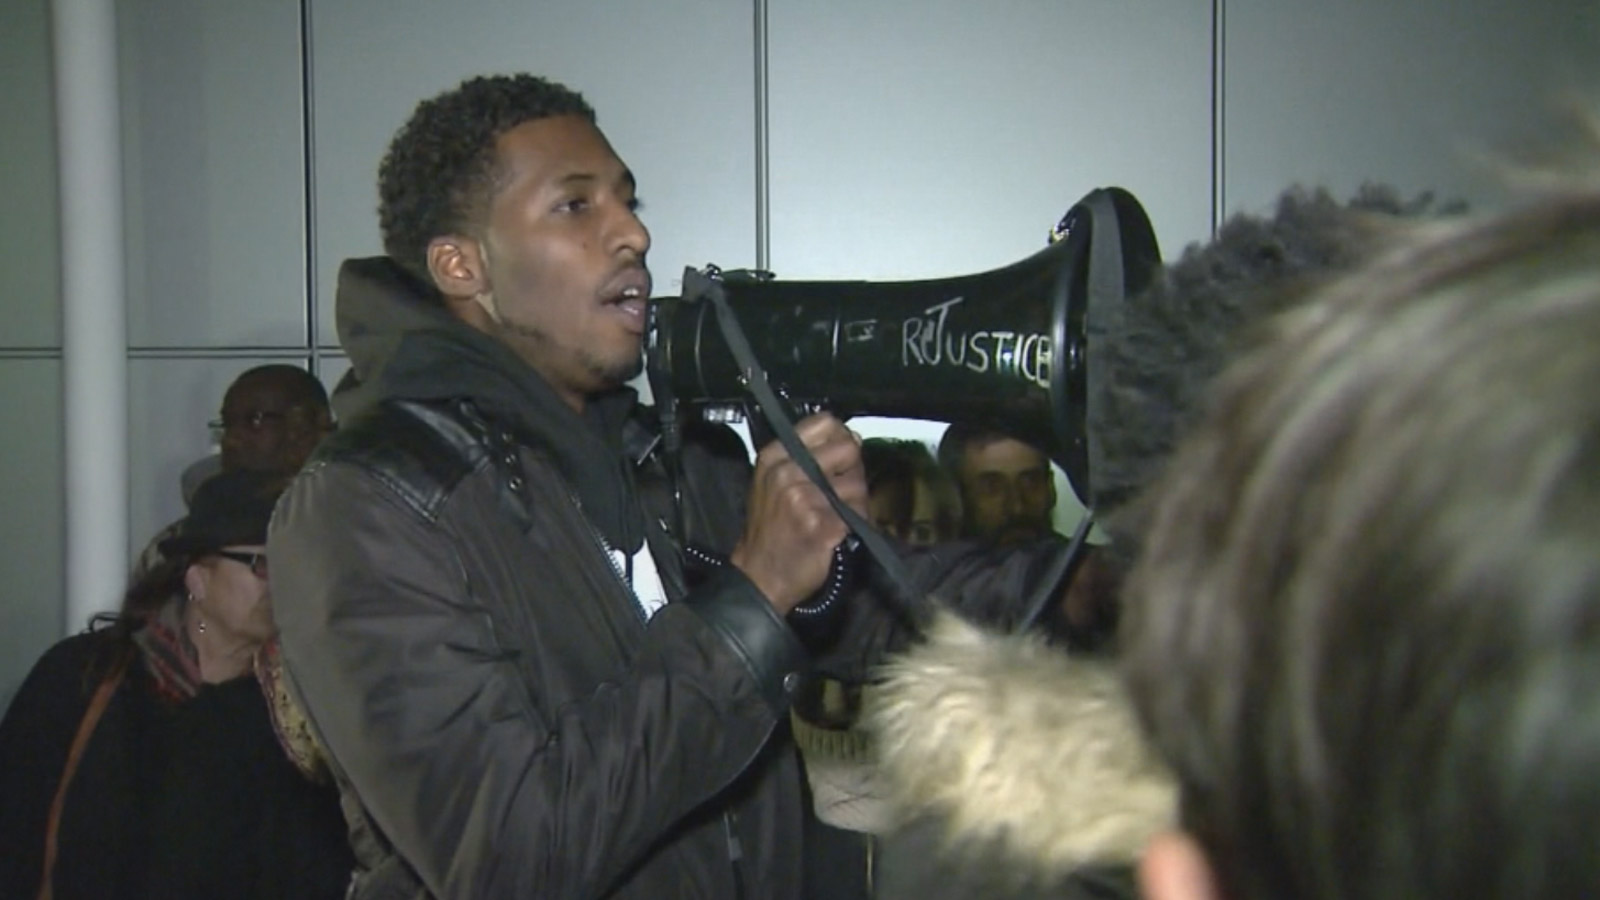 Protesters rallied outside Denver District 2 Police Headquarters (credit: CBS)